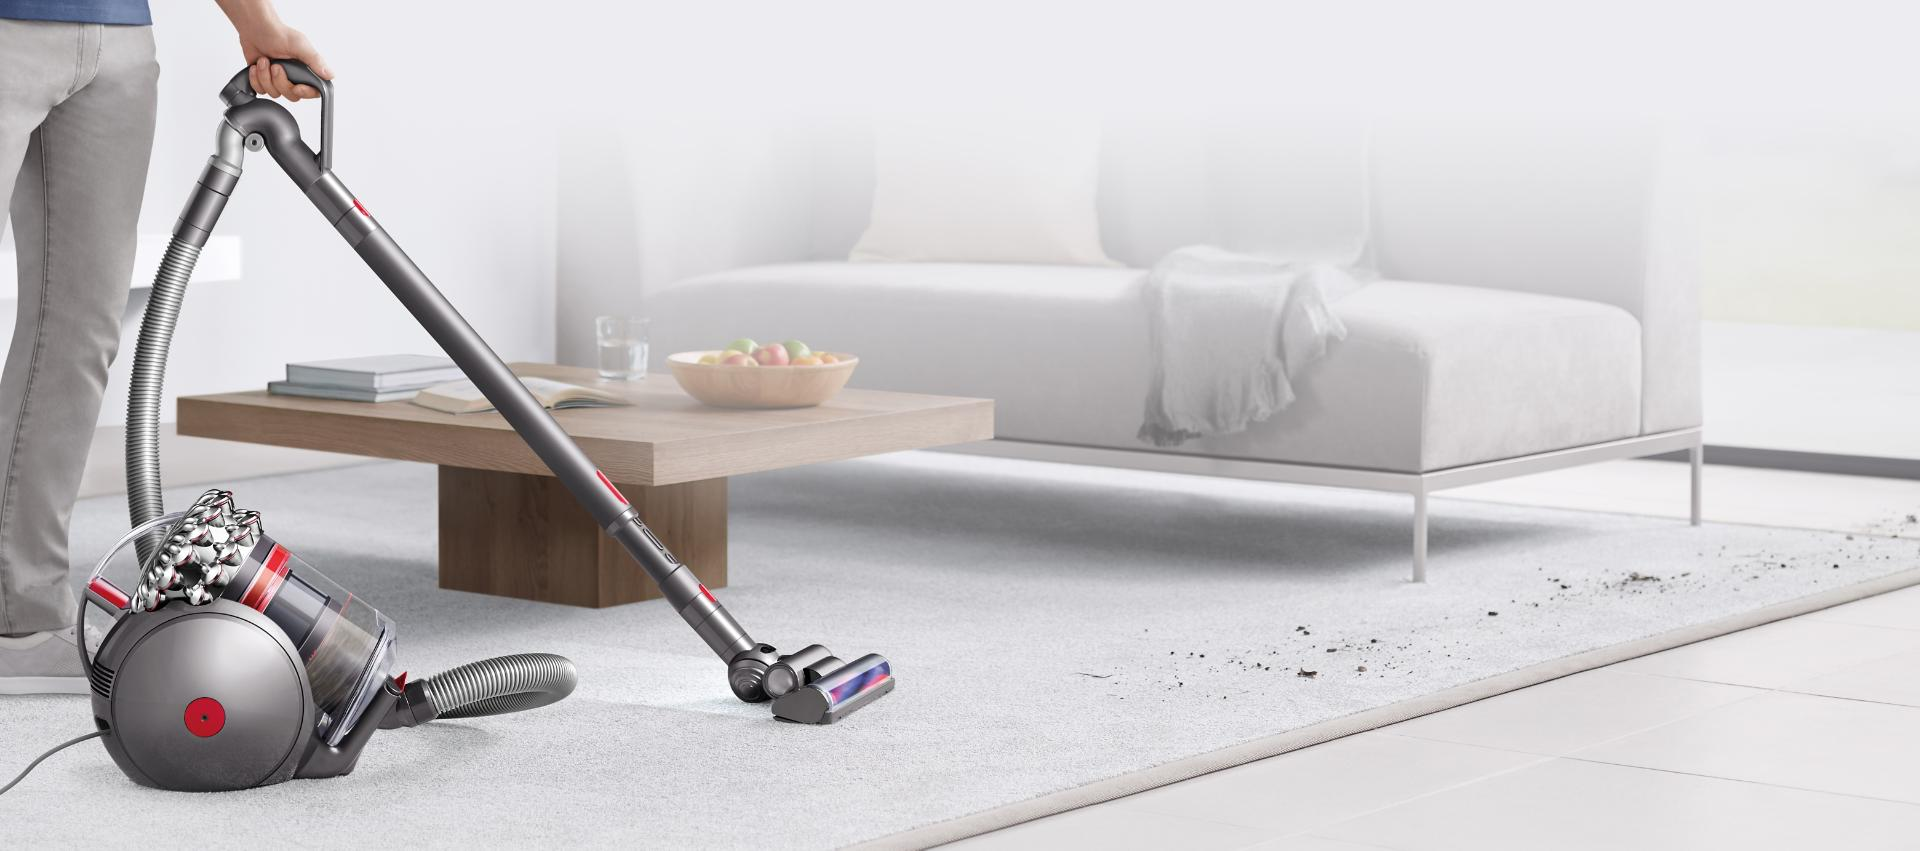 Vacuum Cleaners Dyson Nz